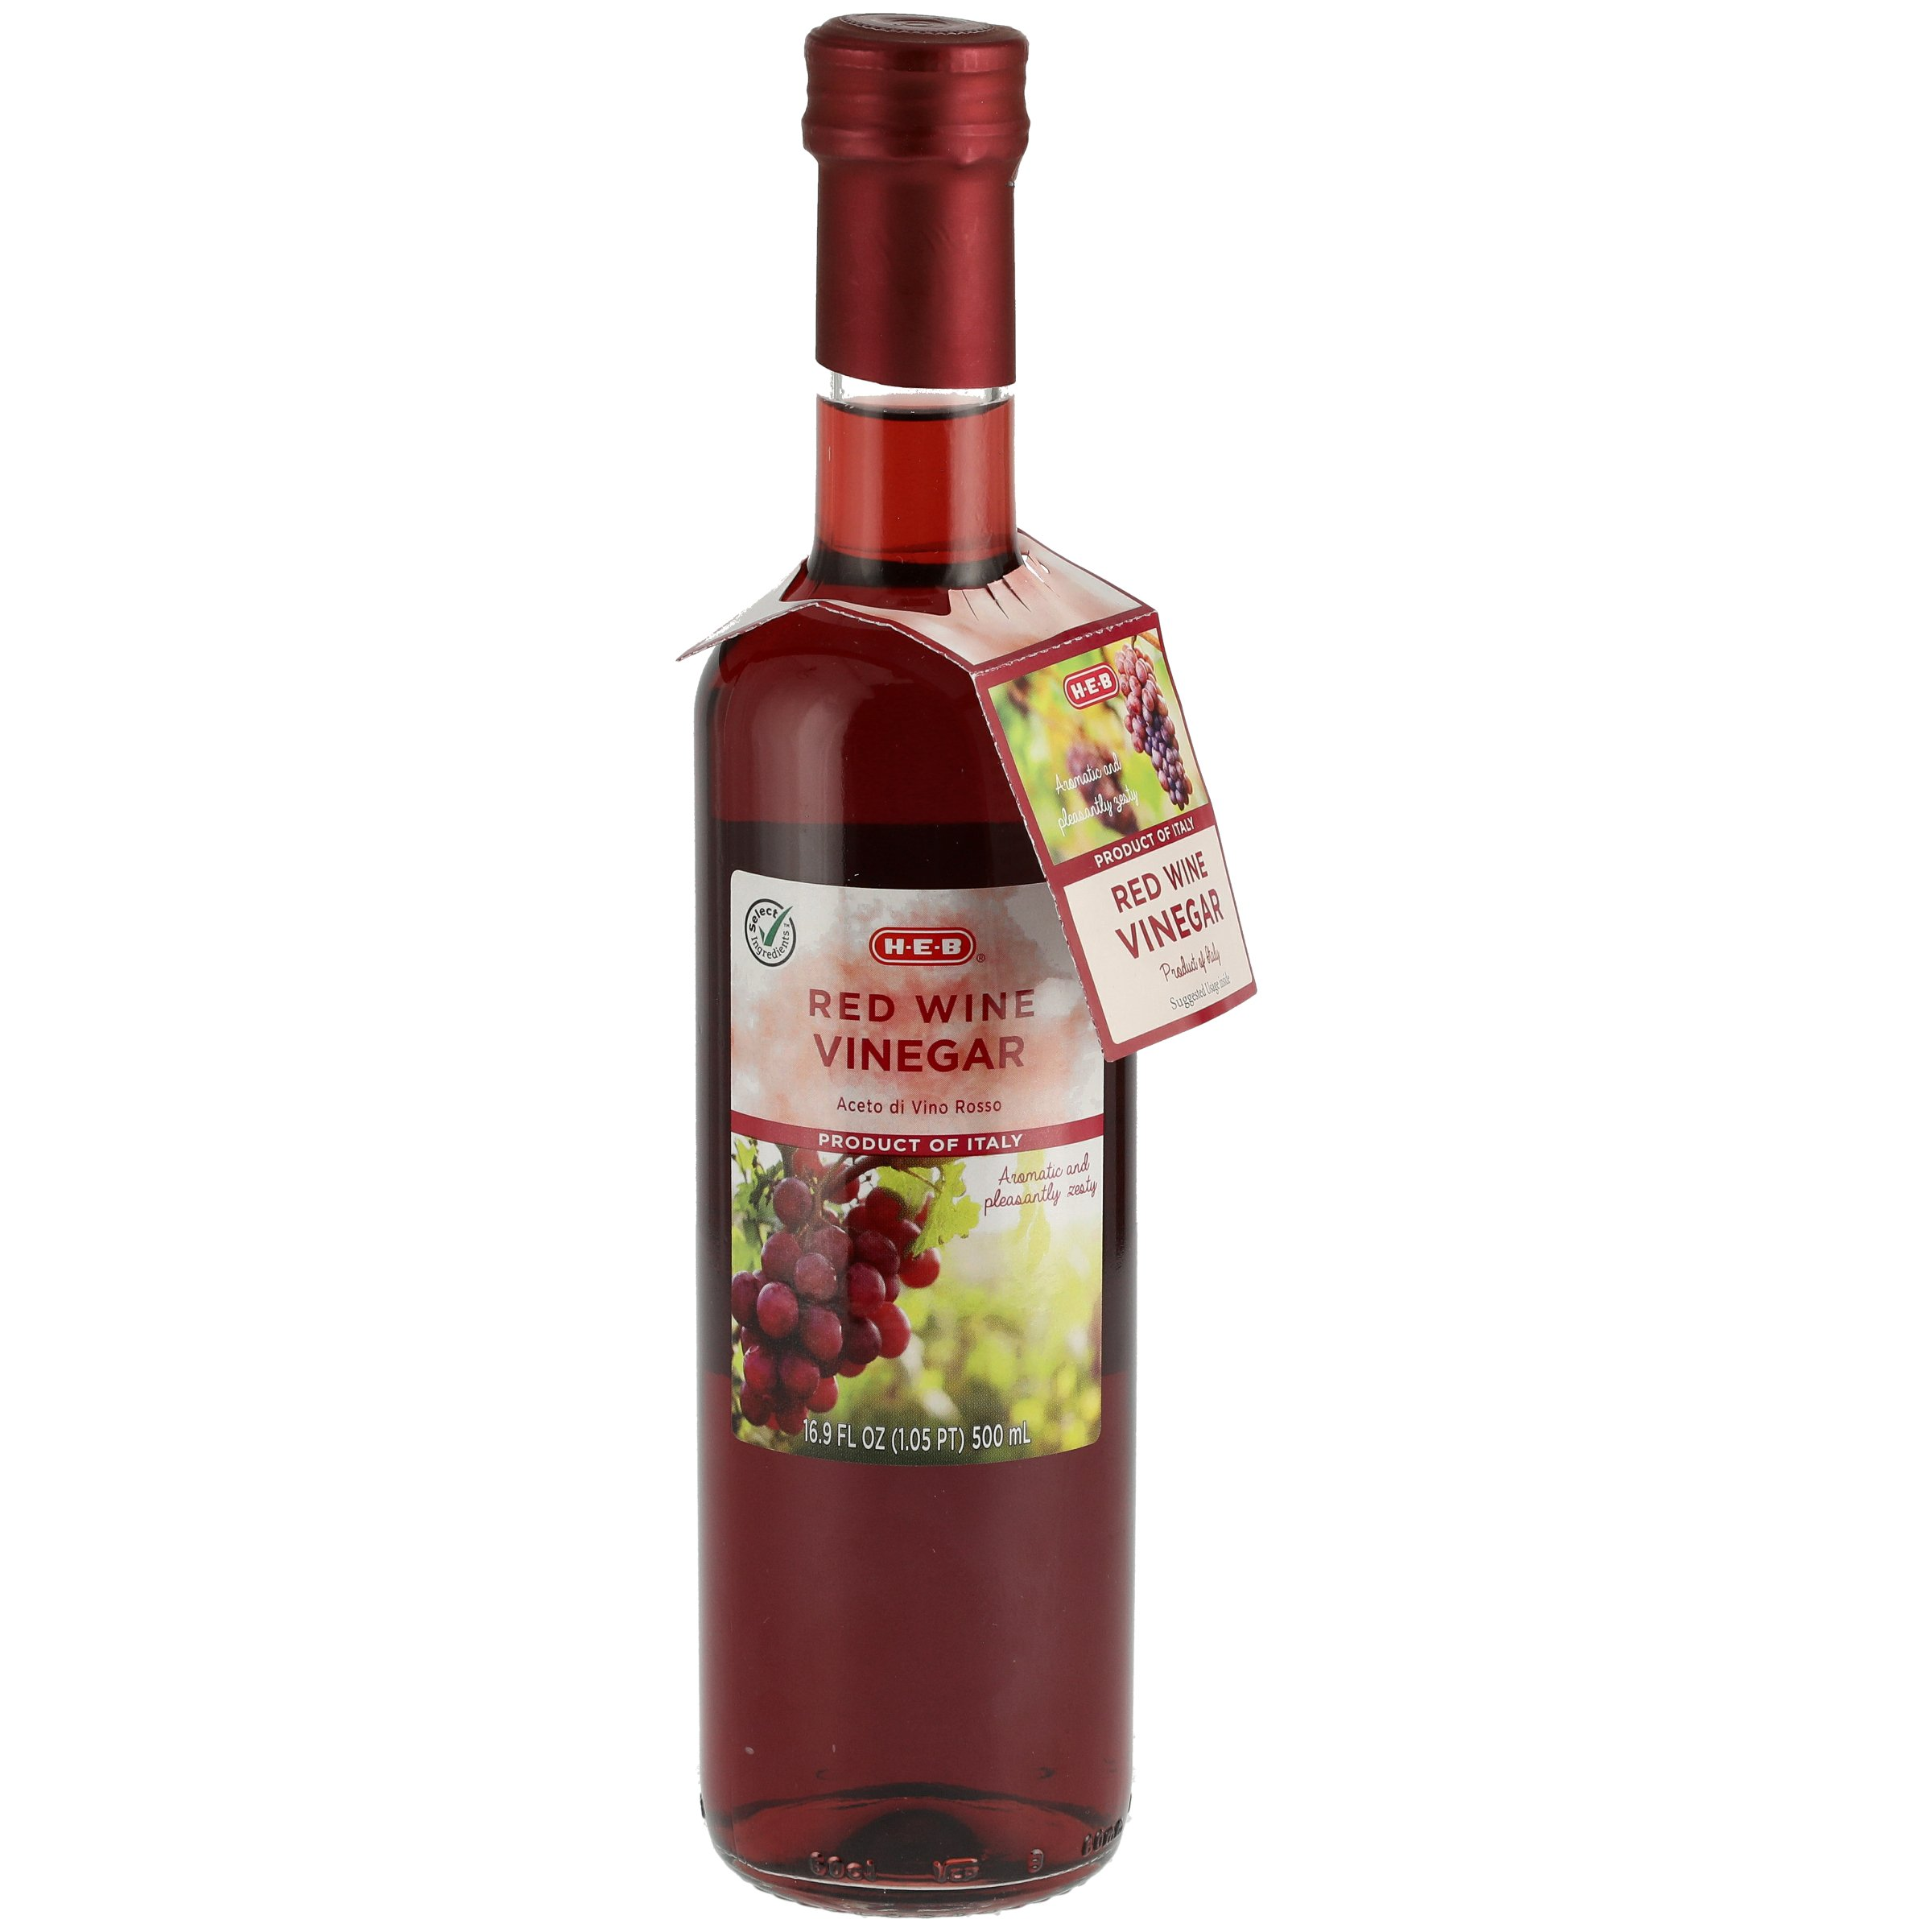 H E B Select Ingredients Red Wine Vinegar Shop Vinegar Cooking Wine At H E B